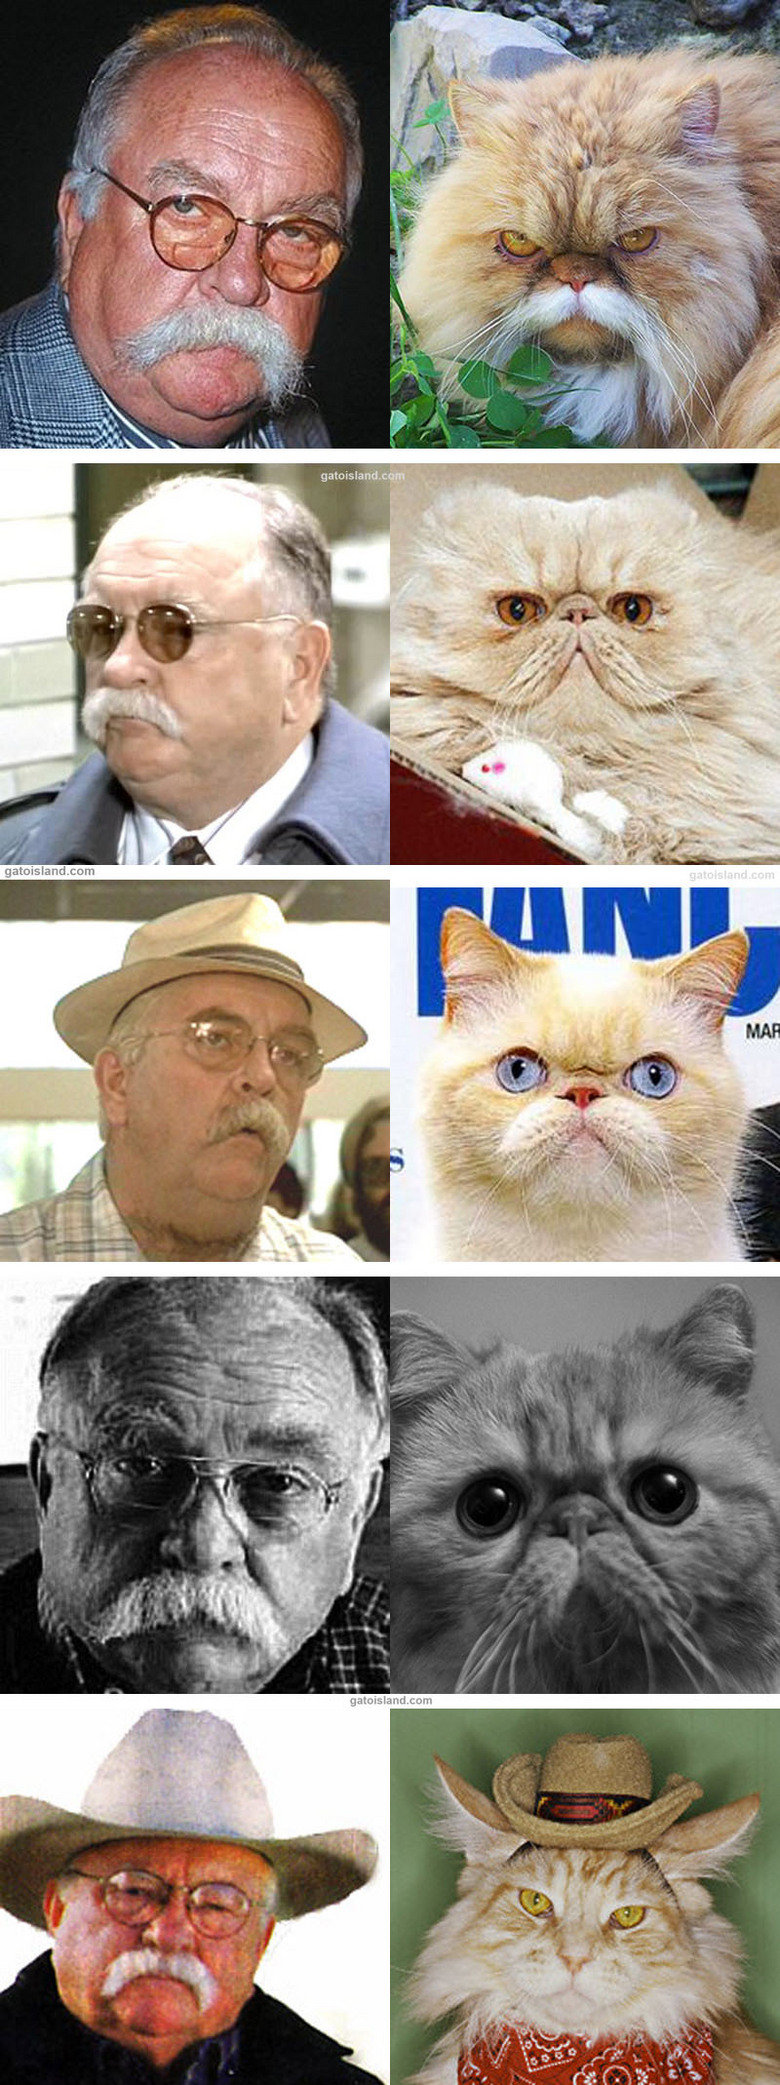 5 Cats That Look Like Wilford Brimley. Made by GatoIsland.com.. Timm!. He done thing's he shouldn't have, like Diabeetus.